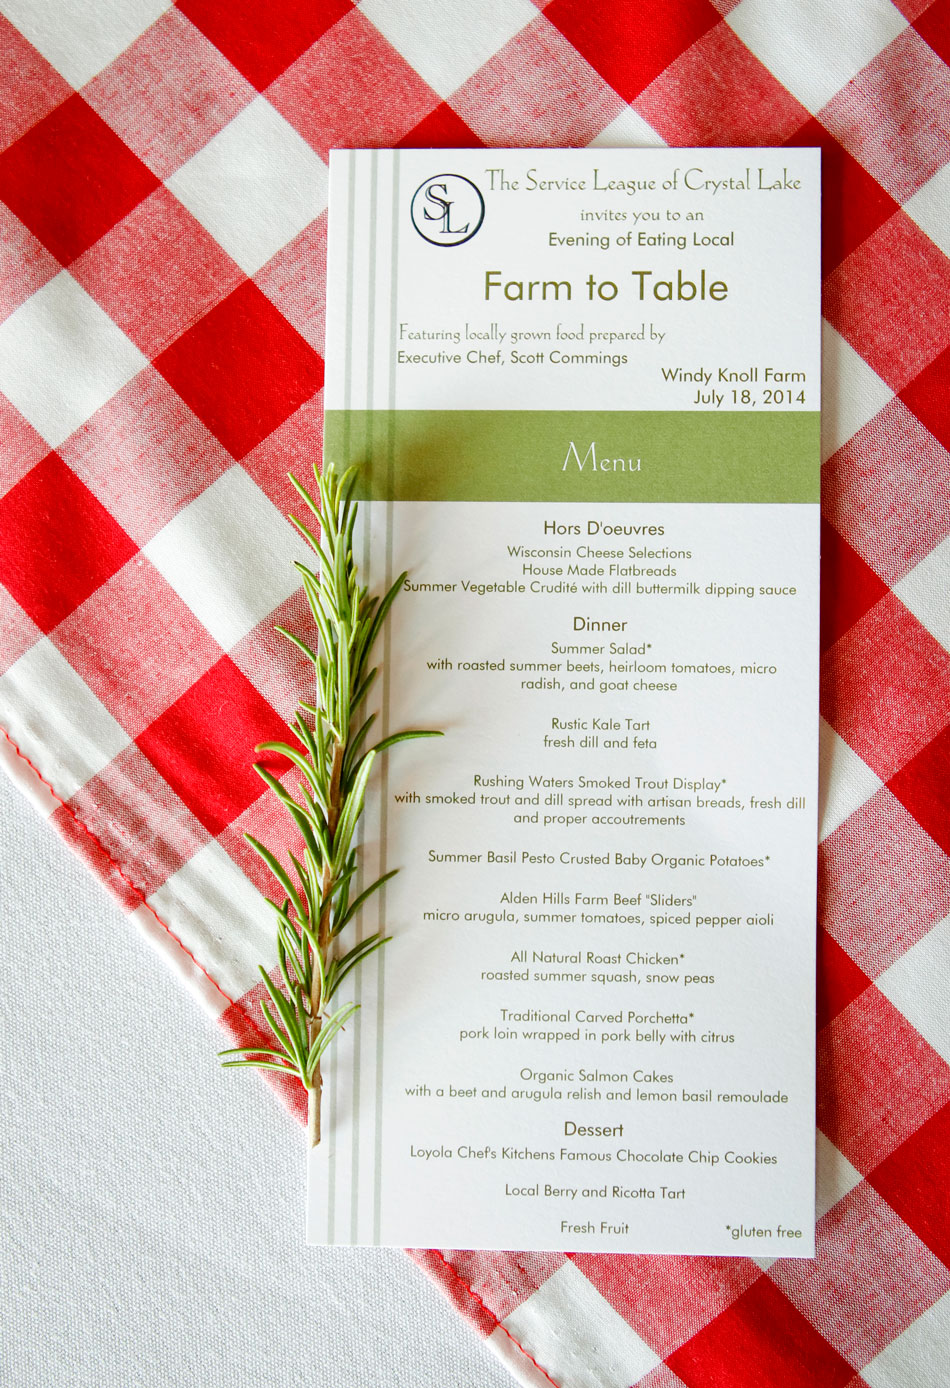 event-photographer-madison-wi-dane-county-gala-fundraiser-ruthie-hauge-photography-farm-to-table 12.jpg